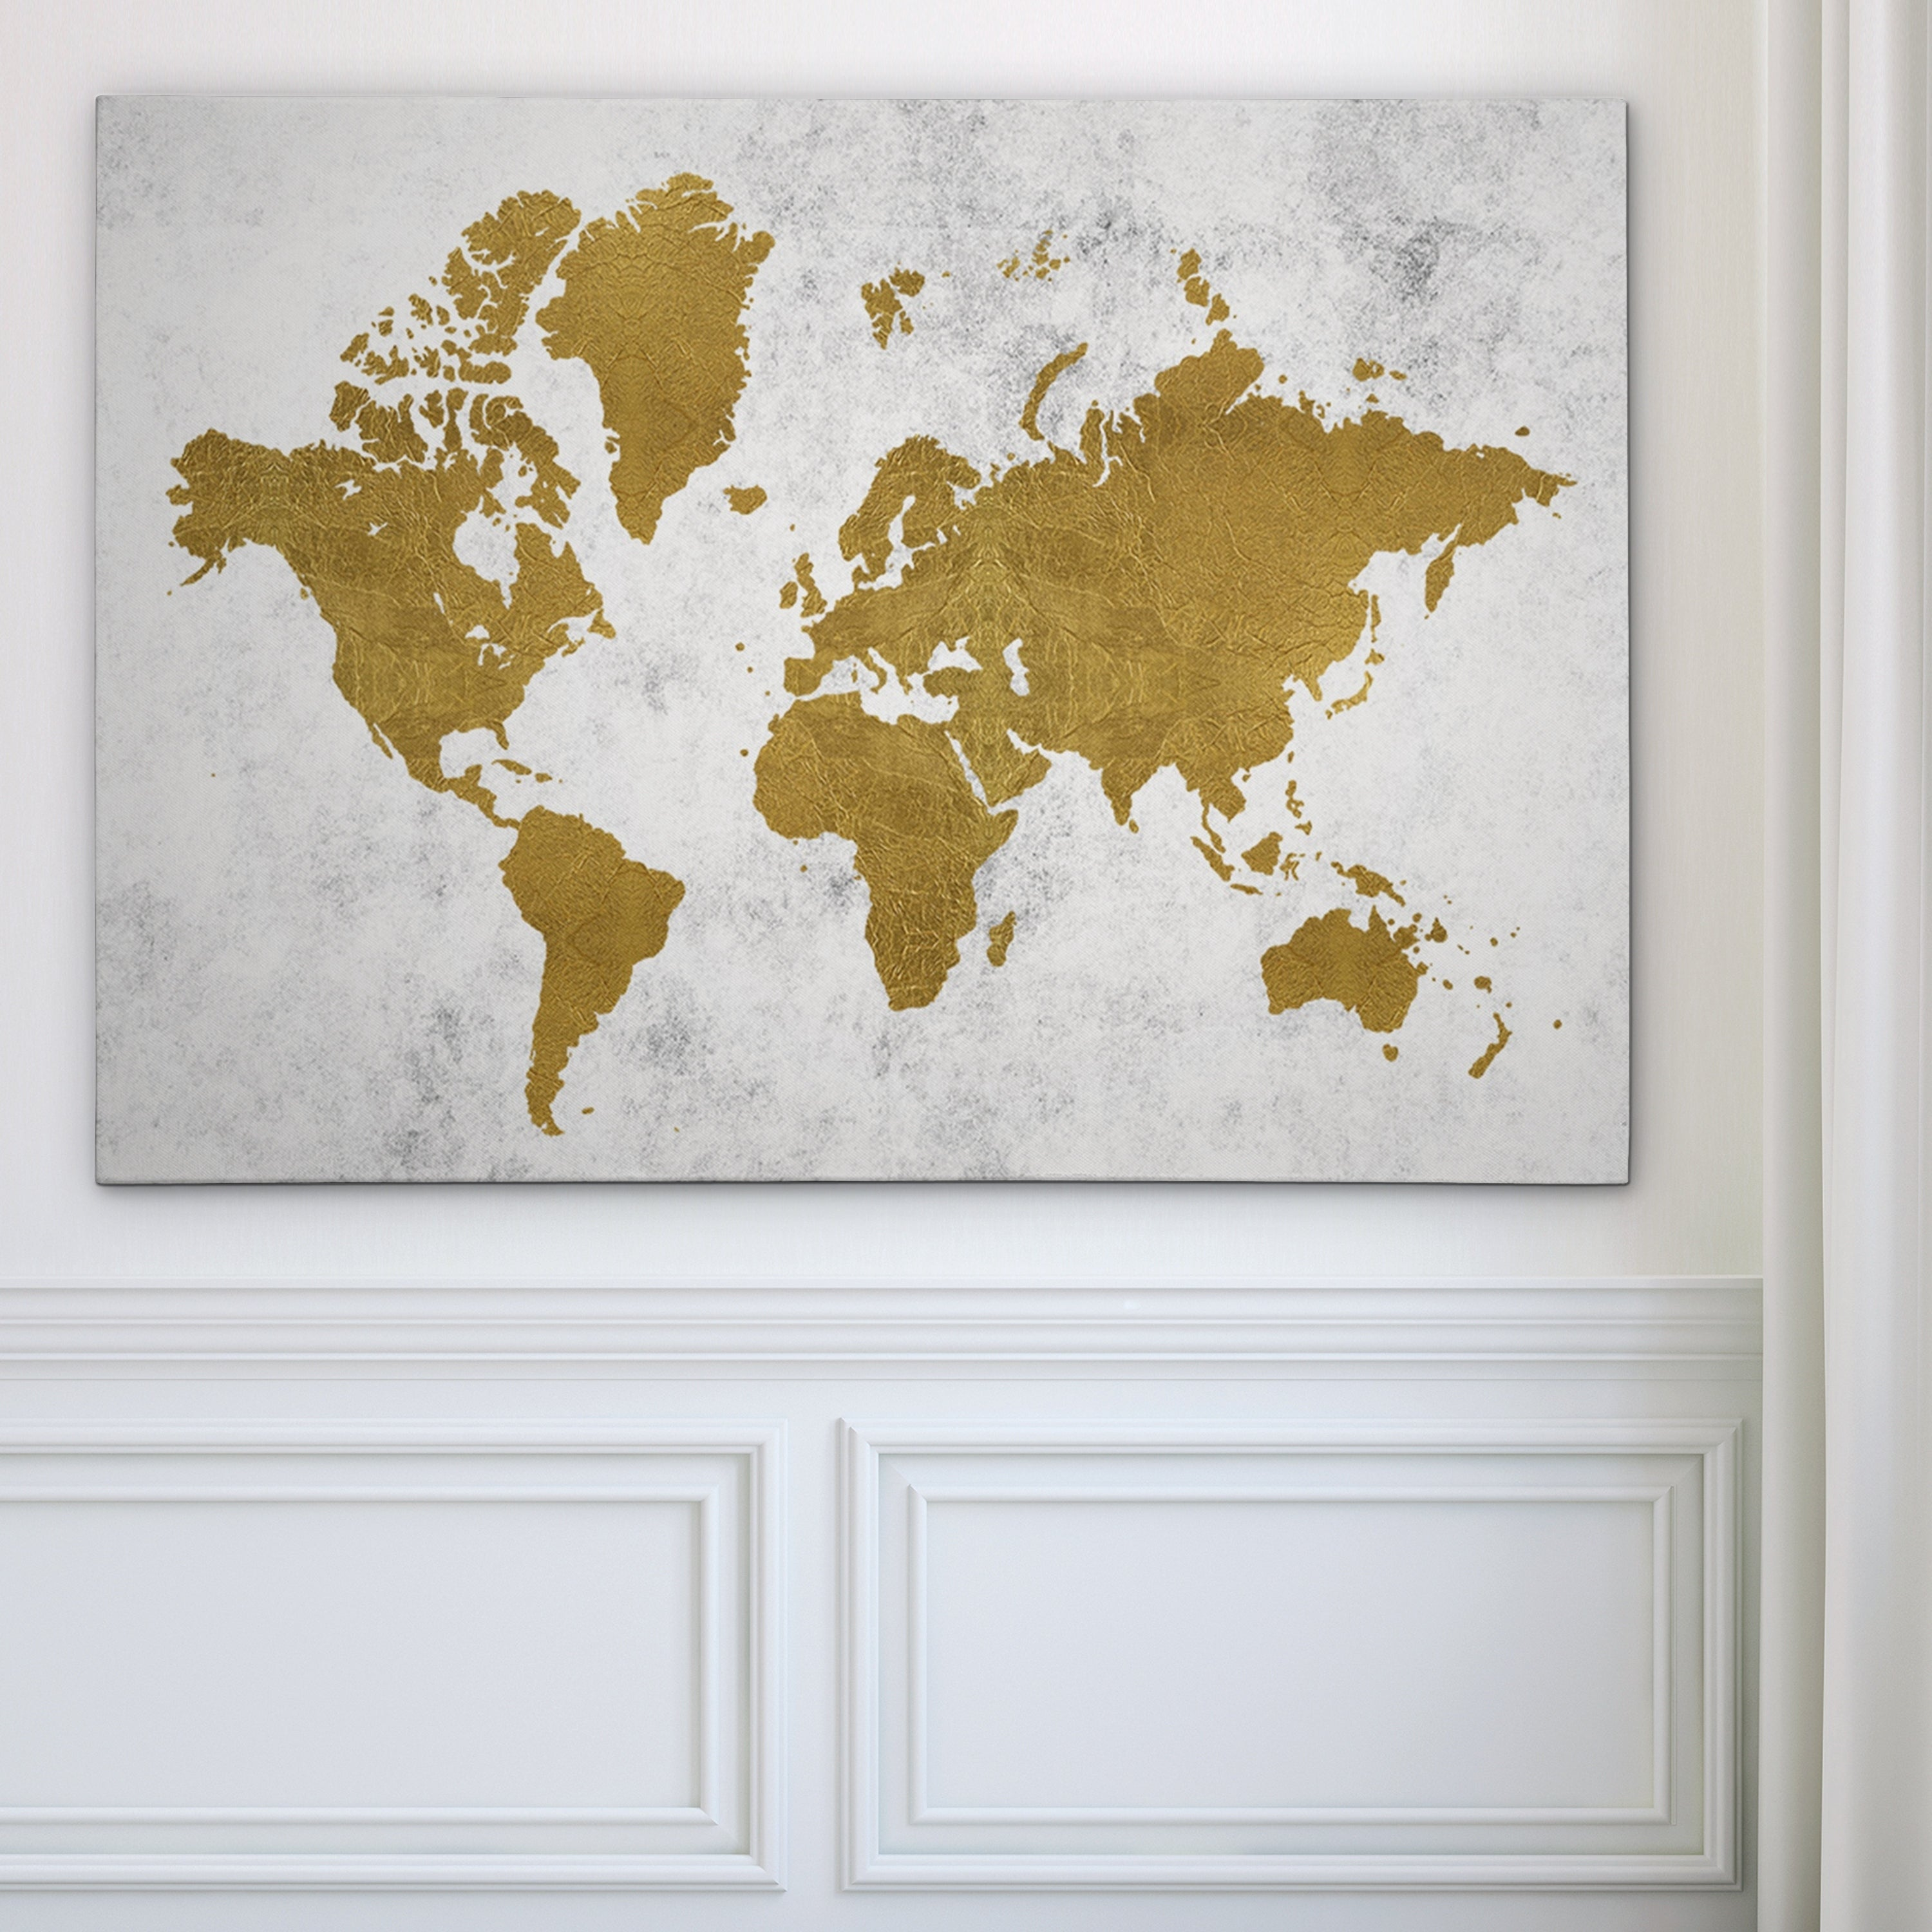 Shop golden world map gallery wrapped canvas on sale free shop golden world map gallery wrapped canvas on sale free shipping today overstock 17990336 gumiabroncs Gallery